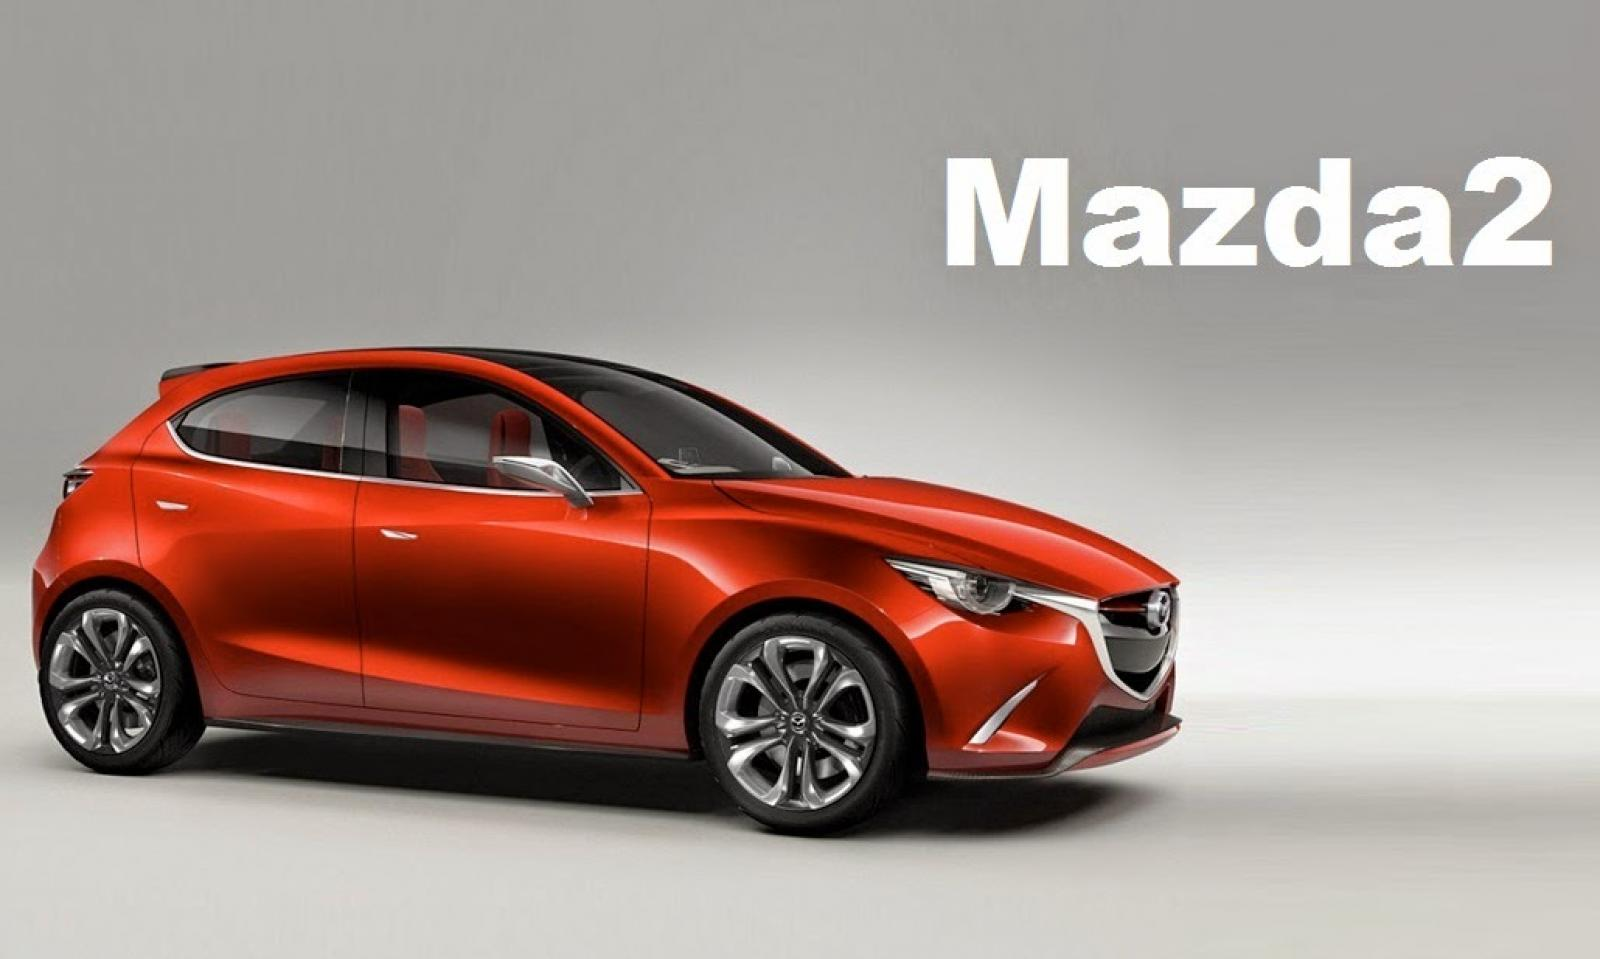 2015 mazda mazda2 information and photos zombiedrive. Black Bedroom Furniture Sets. Home Design Ideas